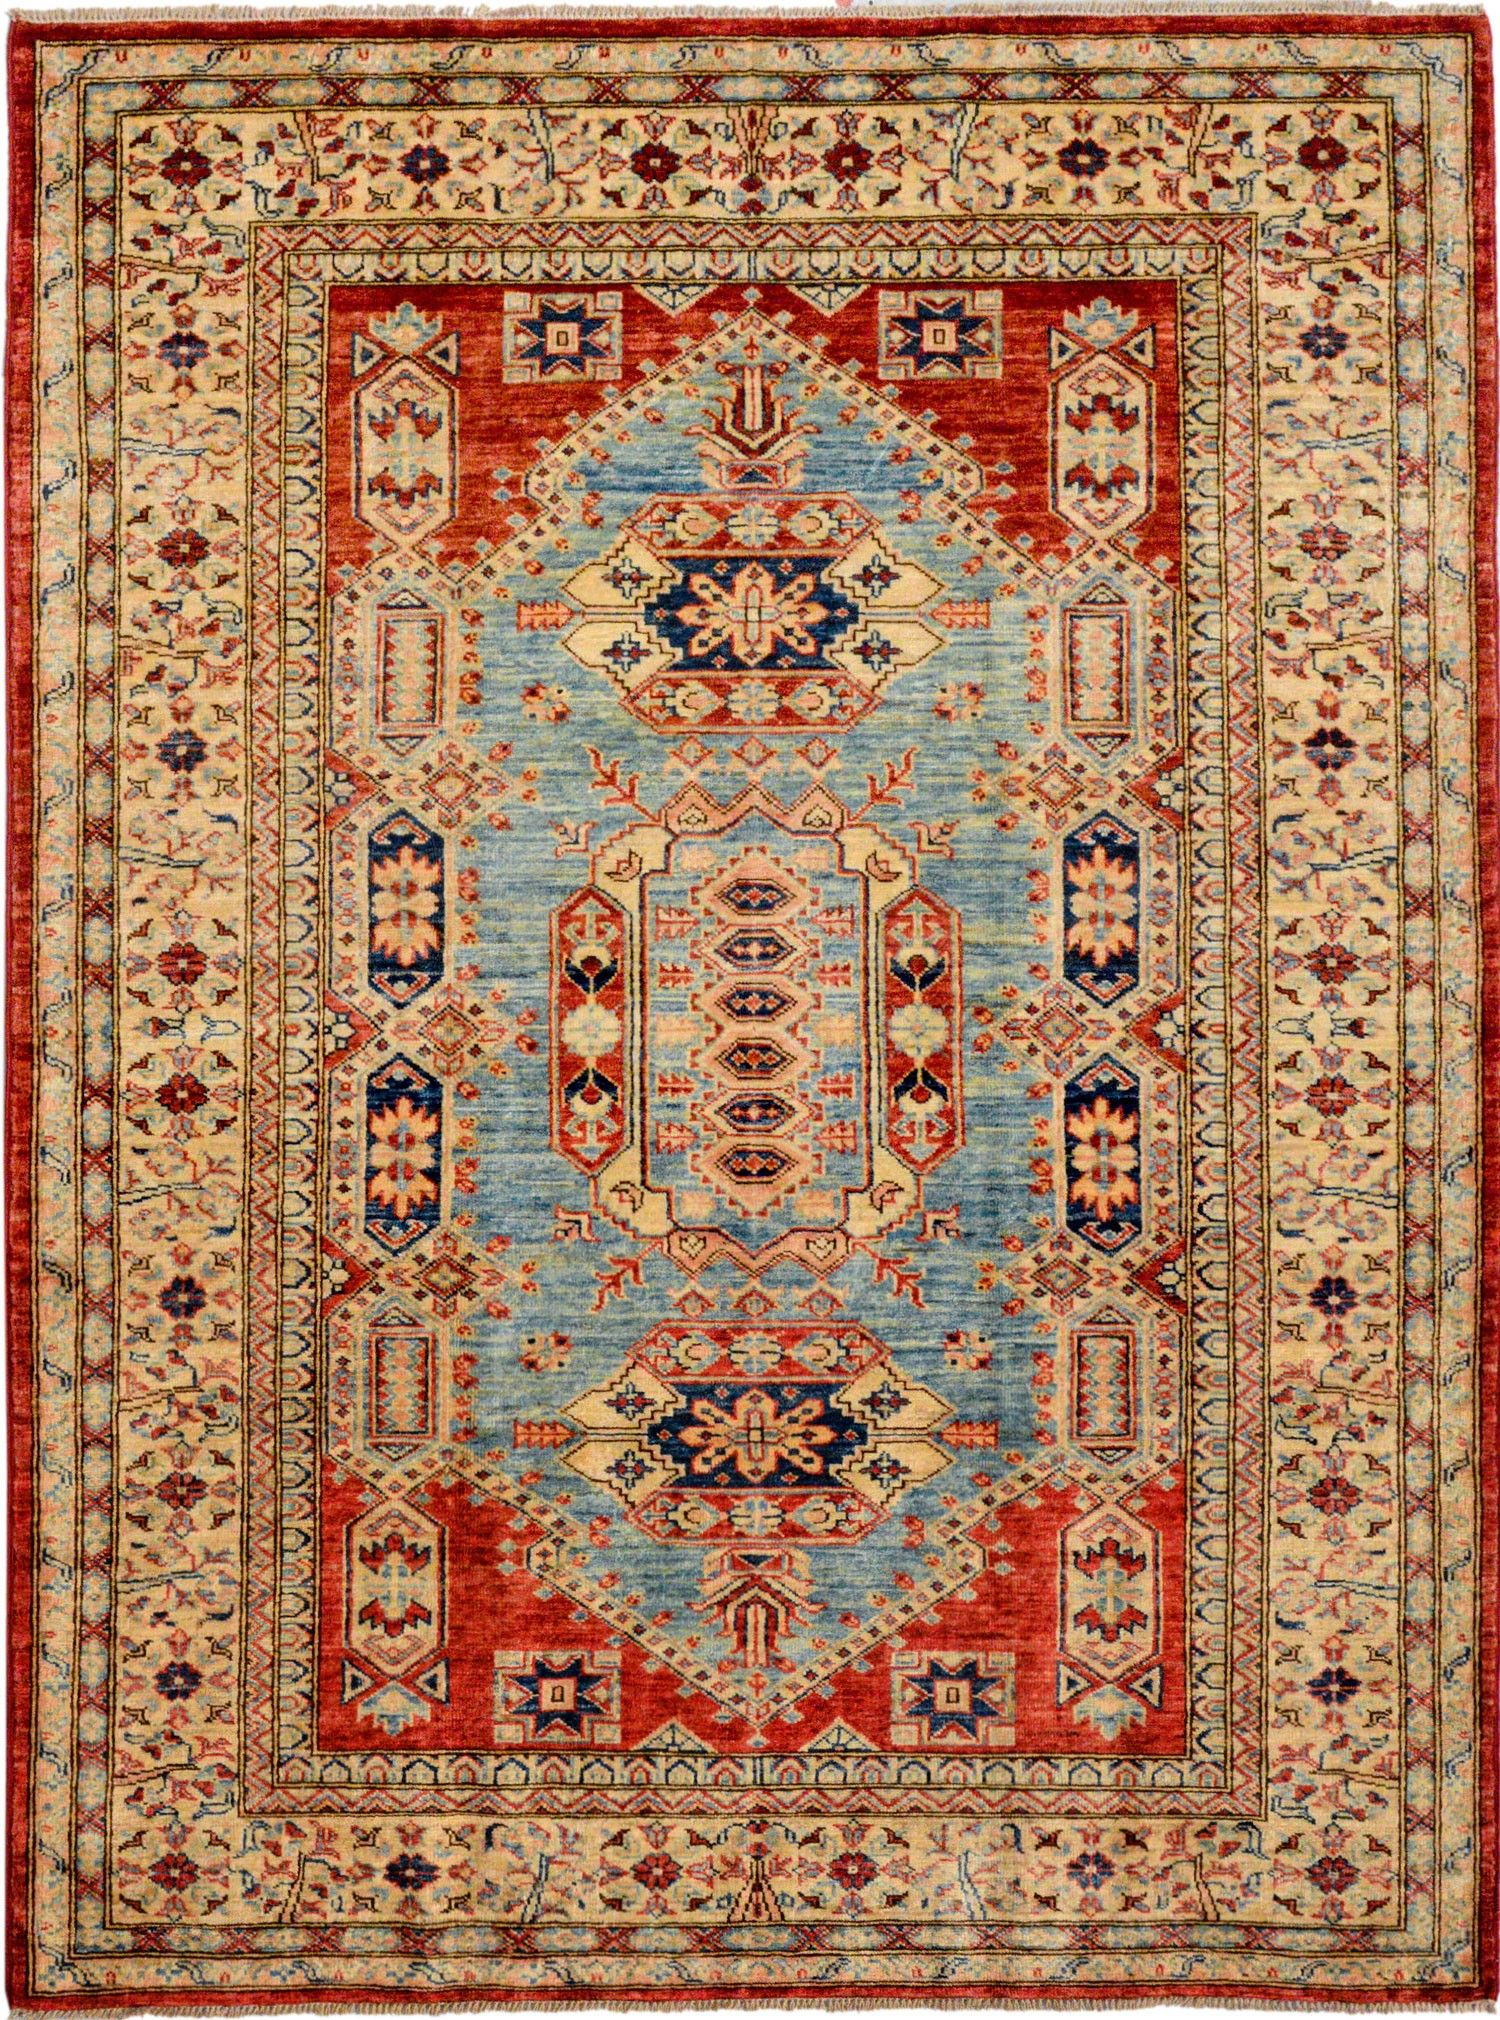 Rust Oriental Kazak Rug 4 11 X 6 8 Ft No 11962 Http Alrug Com Rust Oriental Kazak Rug 4 11 X 6 8 Ft No 11962 Html Rugs On Carpet Rugs Carpet